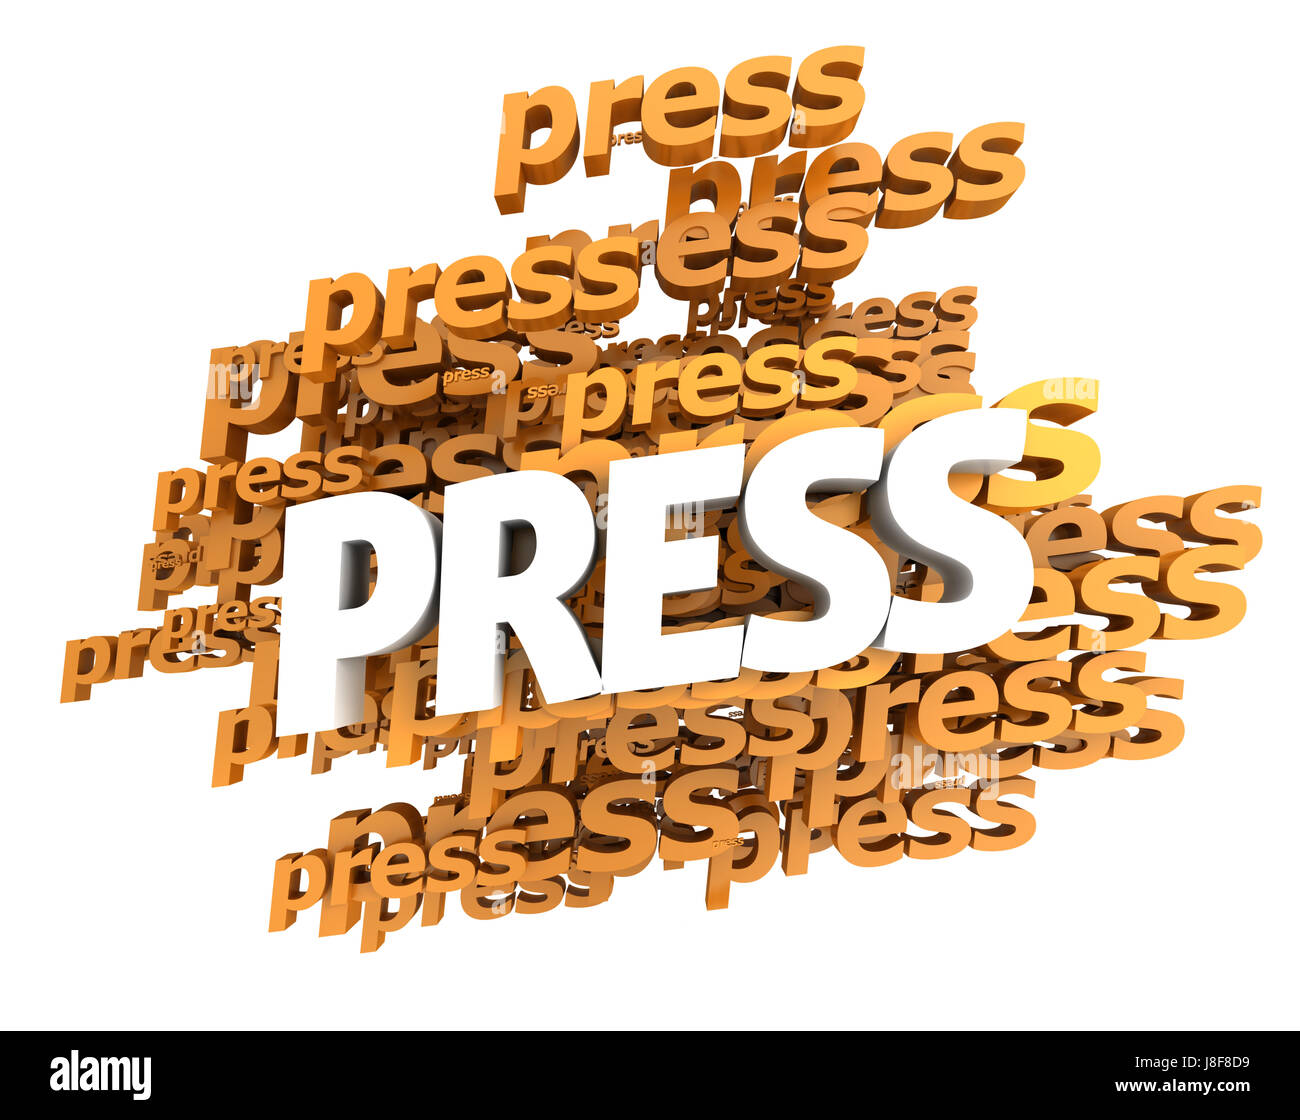 newspaper, journal, story, industry, communication, letters, word, magazine, - Stock Image